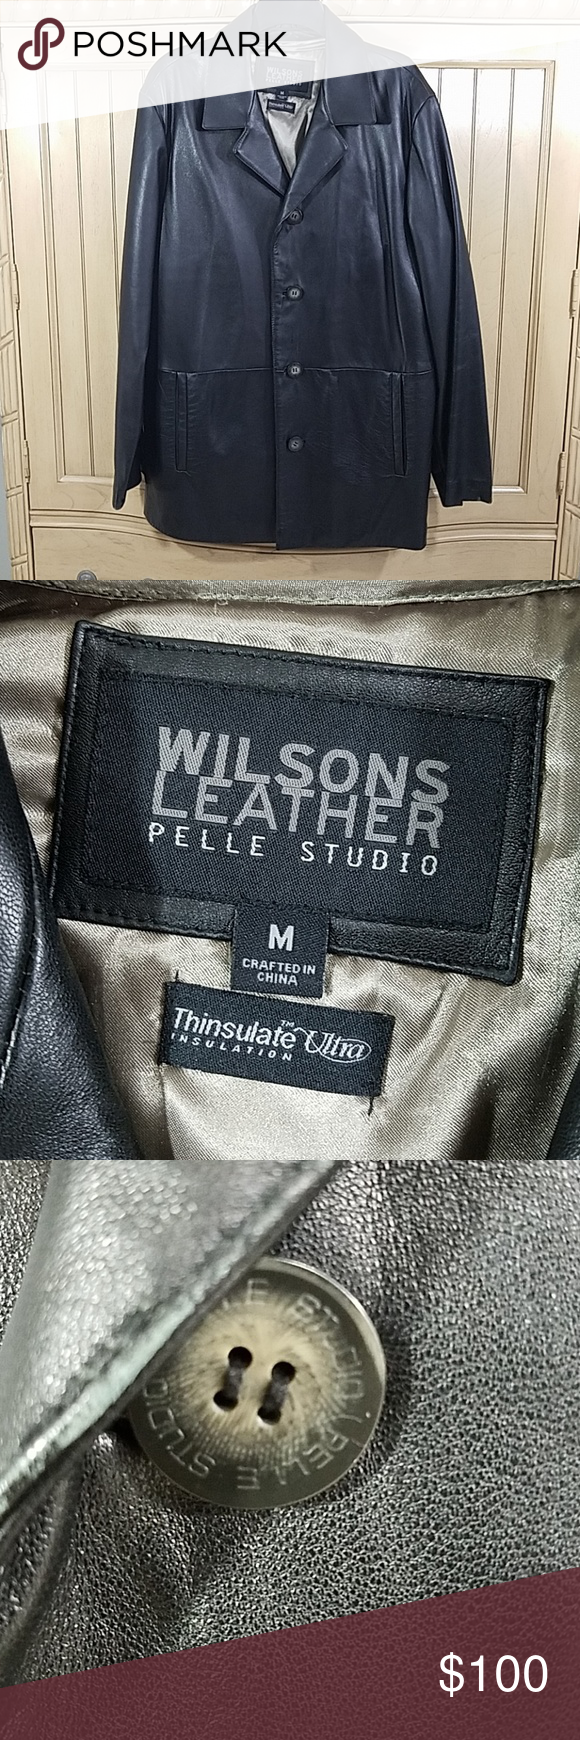 Wilsons Leather/Pelle Studio w/Thinsulate, sz M Wilsons